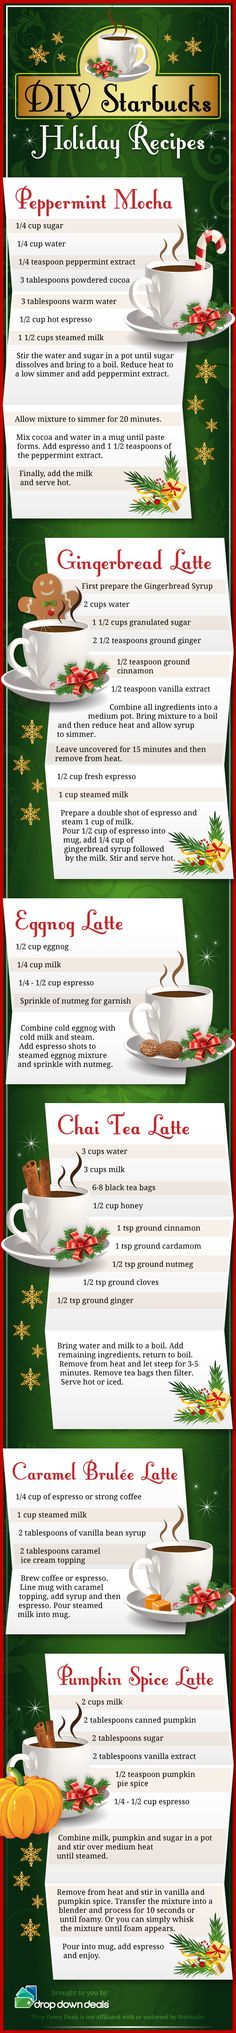 Starbucks Holiday Drinks Recipe